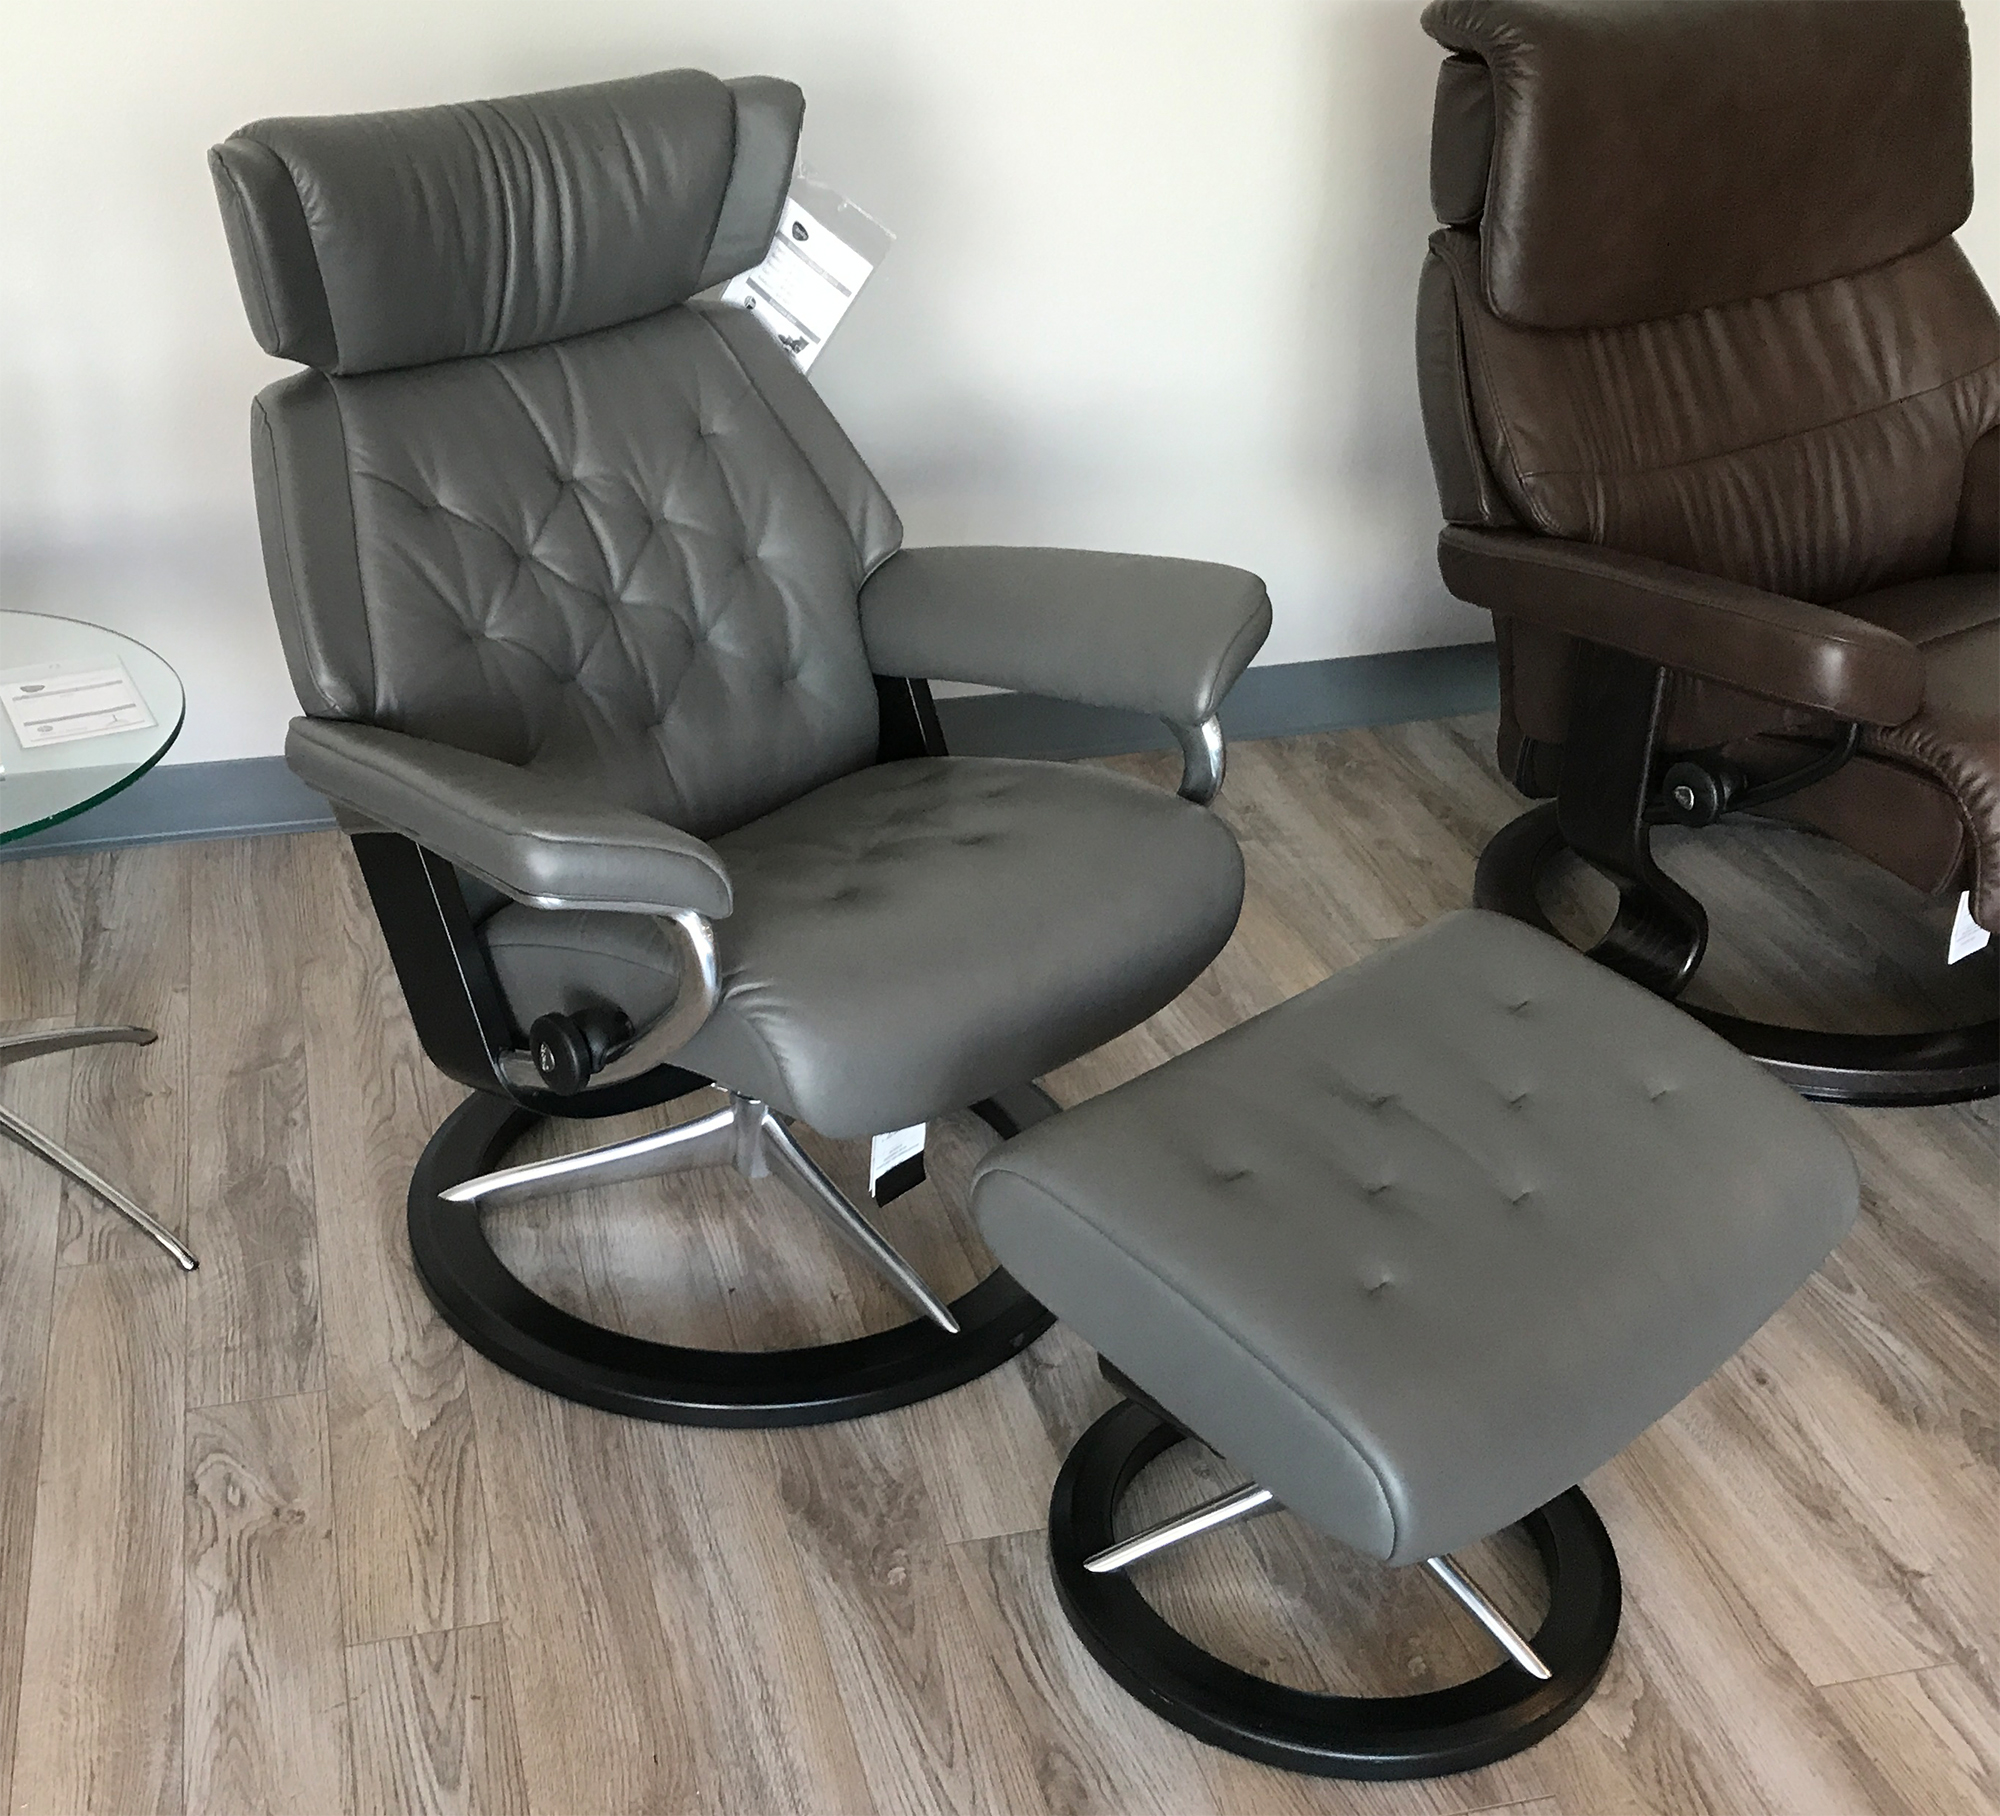 Stressless Skyline Signature Base Paloma Metal Grey Leather Recliner Chair and Ottoman by Ekornes : leather chairs recliner - islam-shia.org